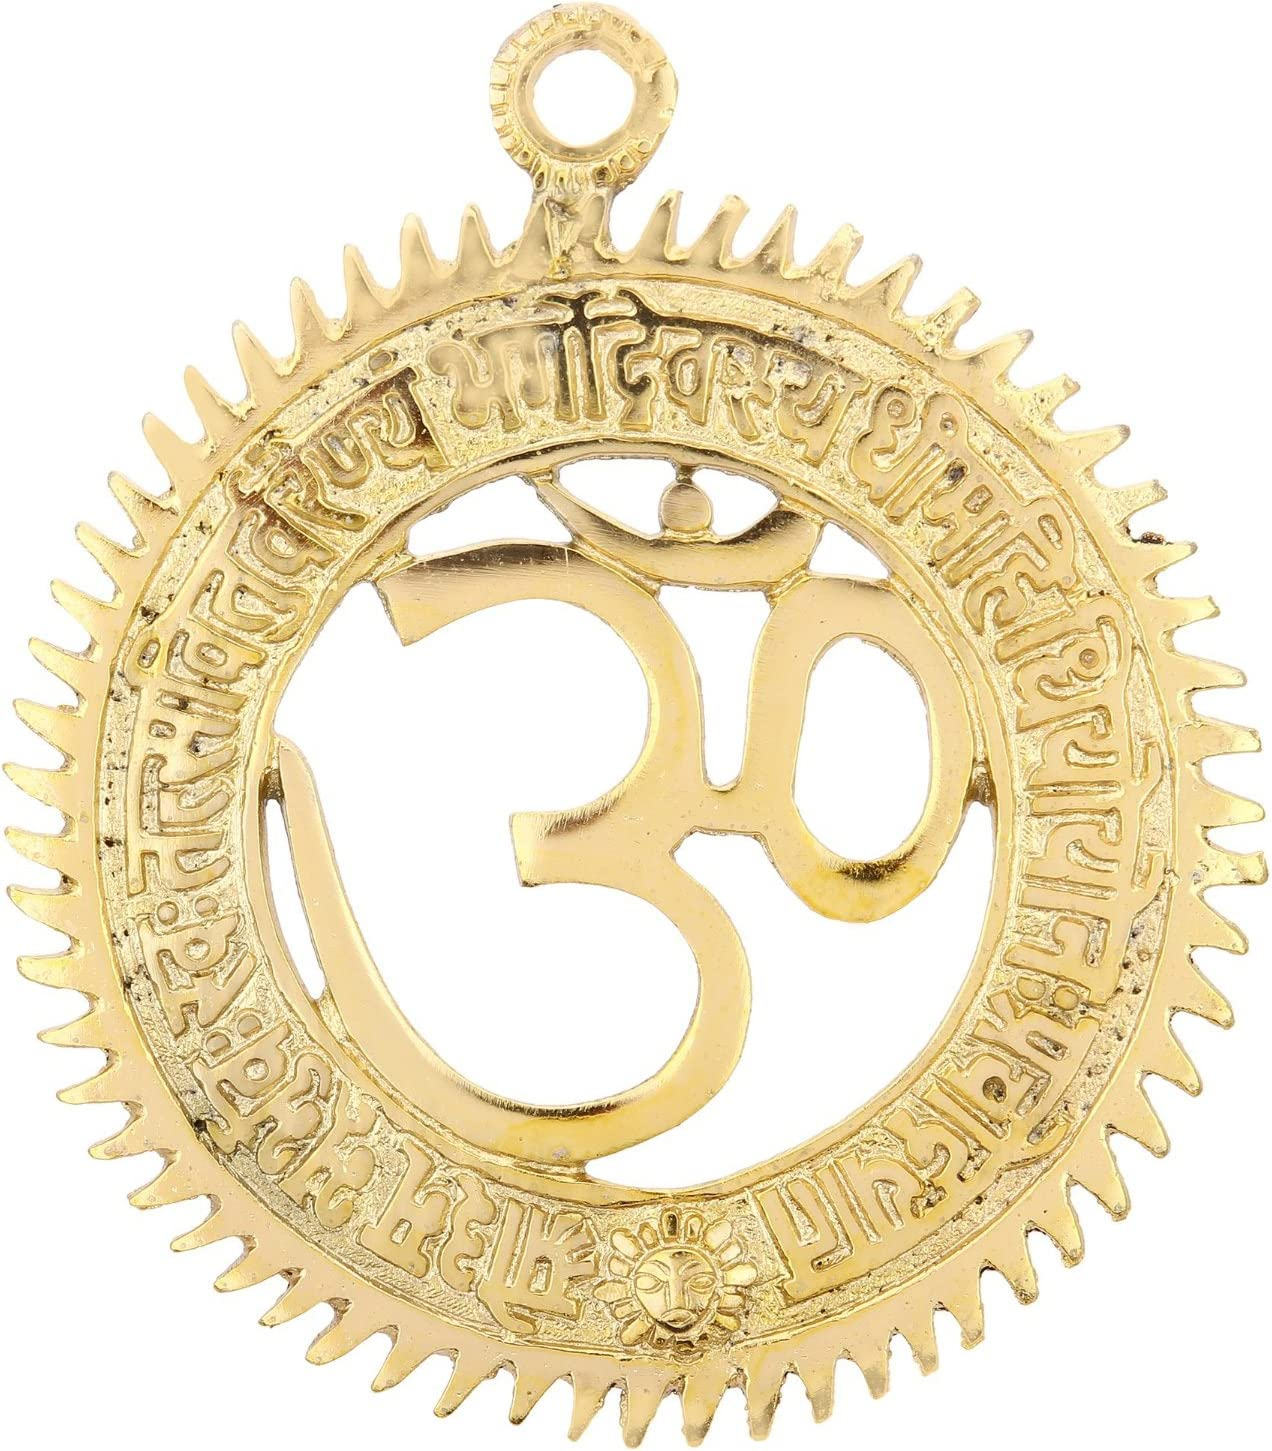 The Hue Cottage Handmade OM Wall Hanging/ Indian Hindu Religious Metal Idol Sculpture 15 cms with Gayatri Mantra for Home Decoration Showpiece /& Spiritual Gift Item